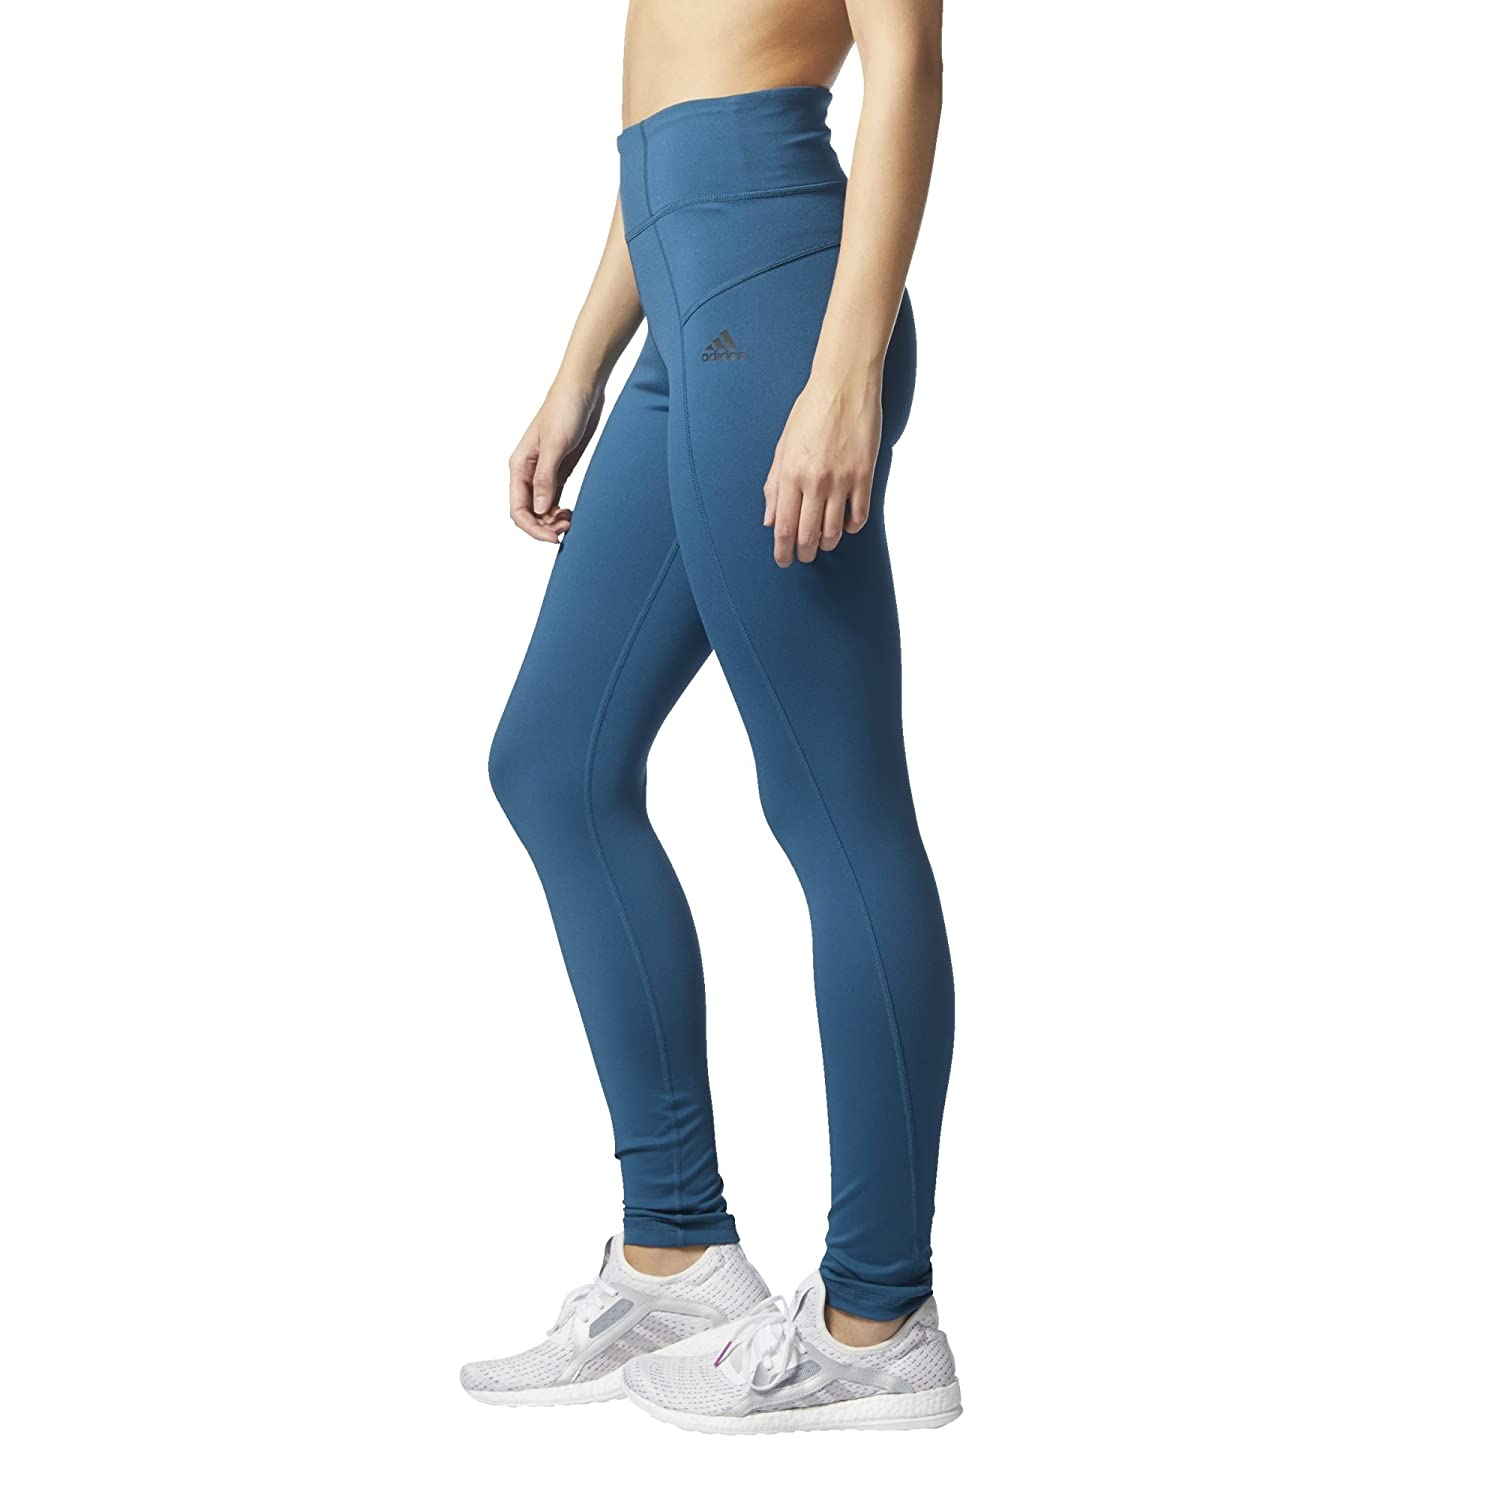 hot-selling authentic 2019 discount sale various design adidas Women's Training High Rise Long Tights